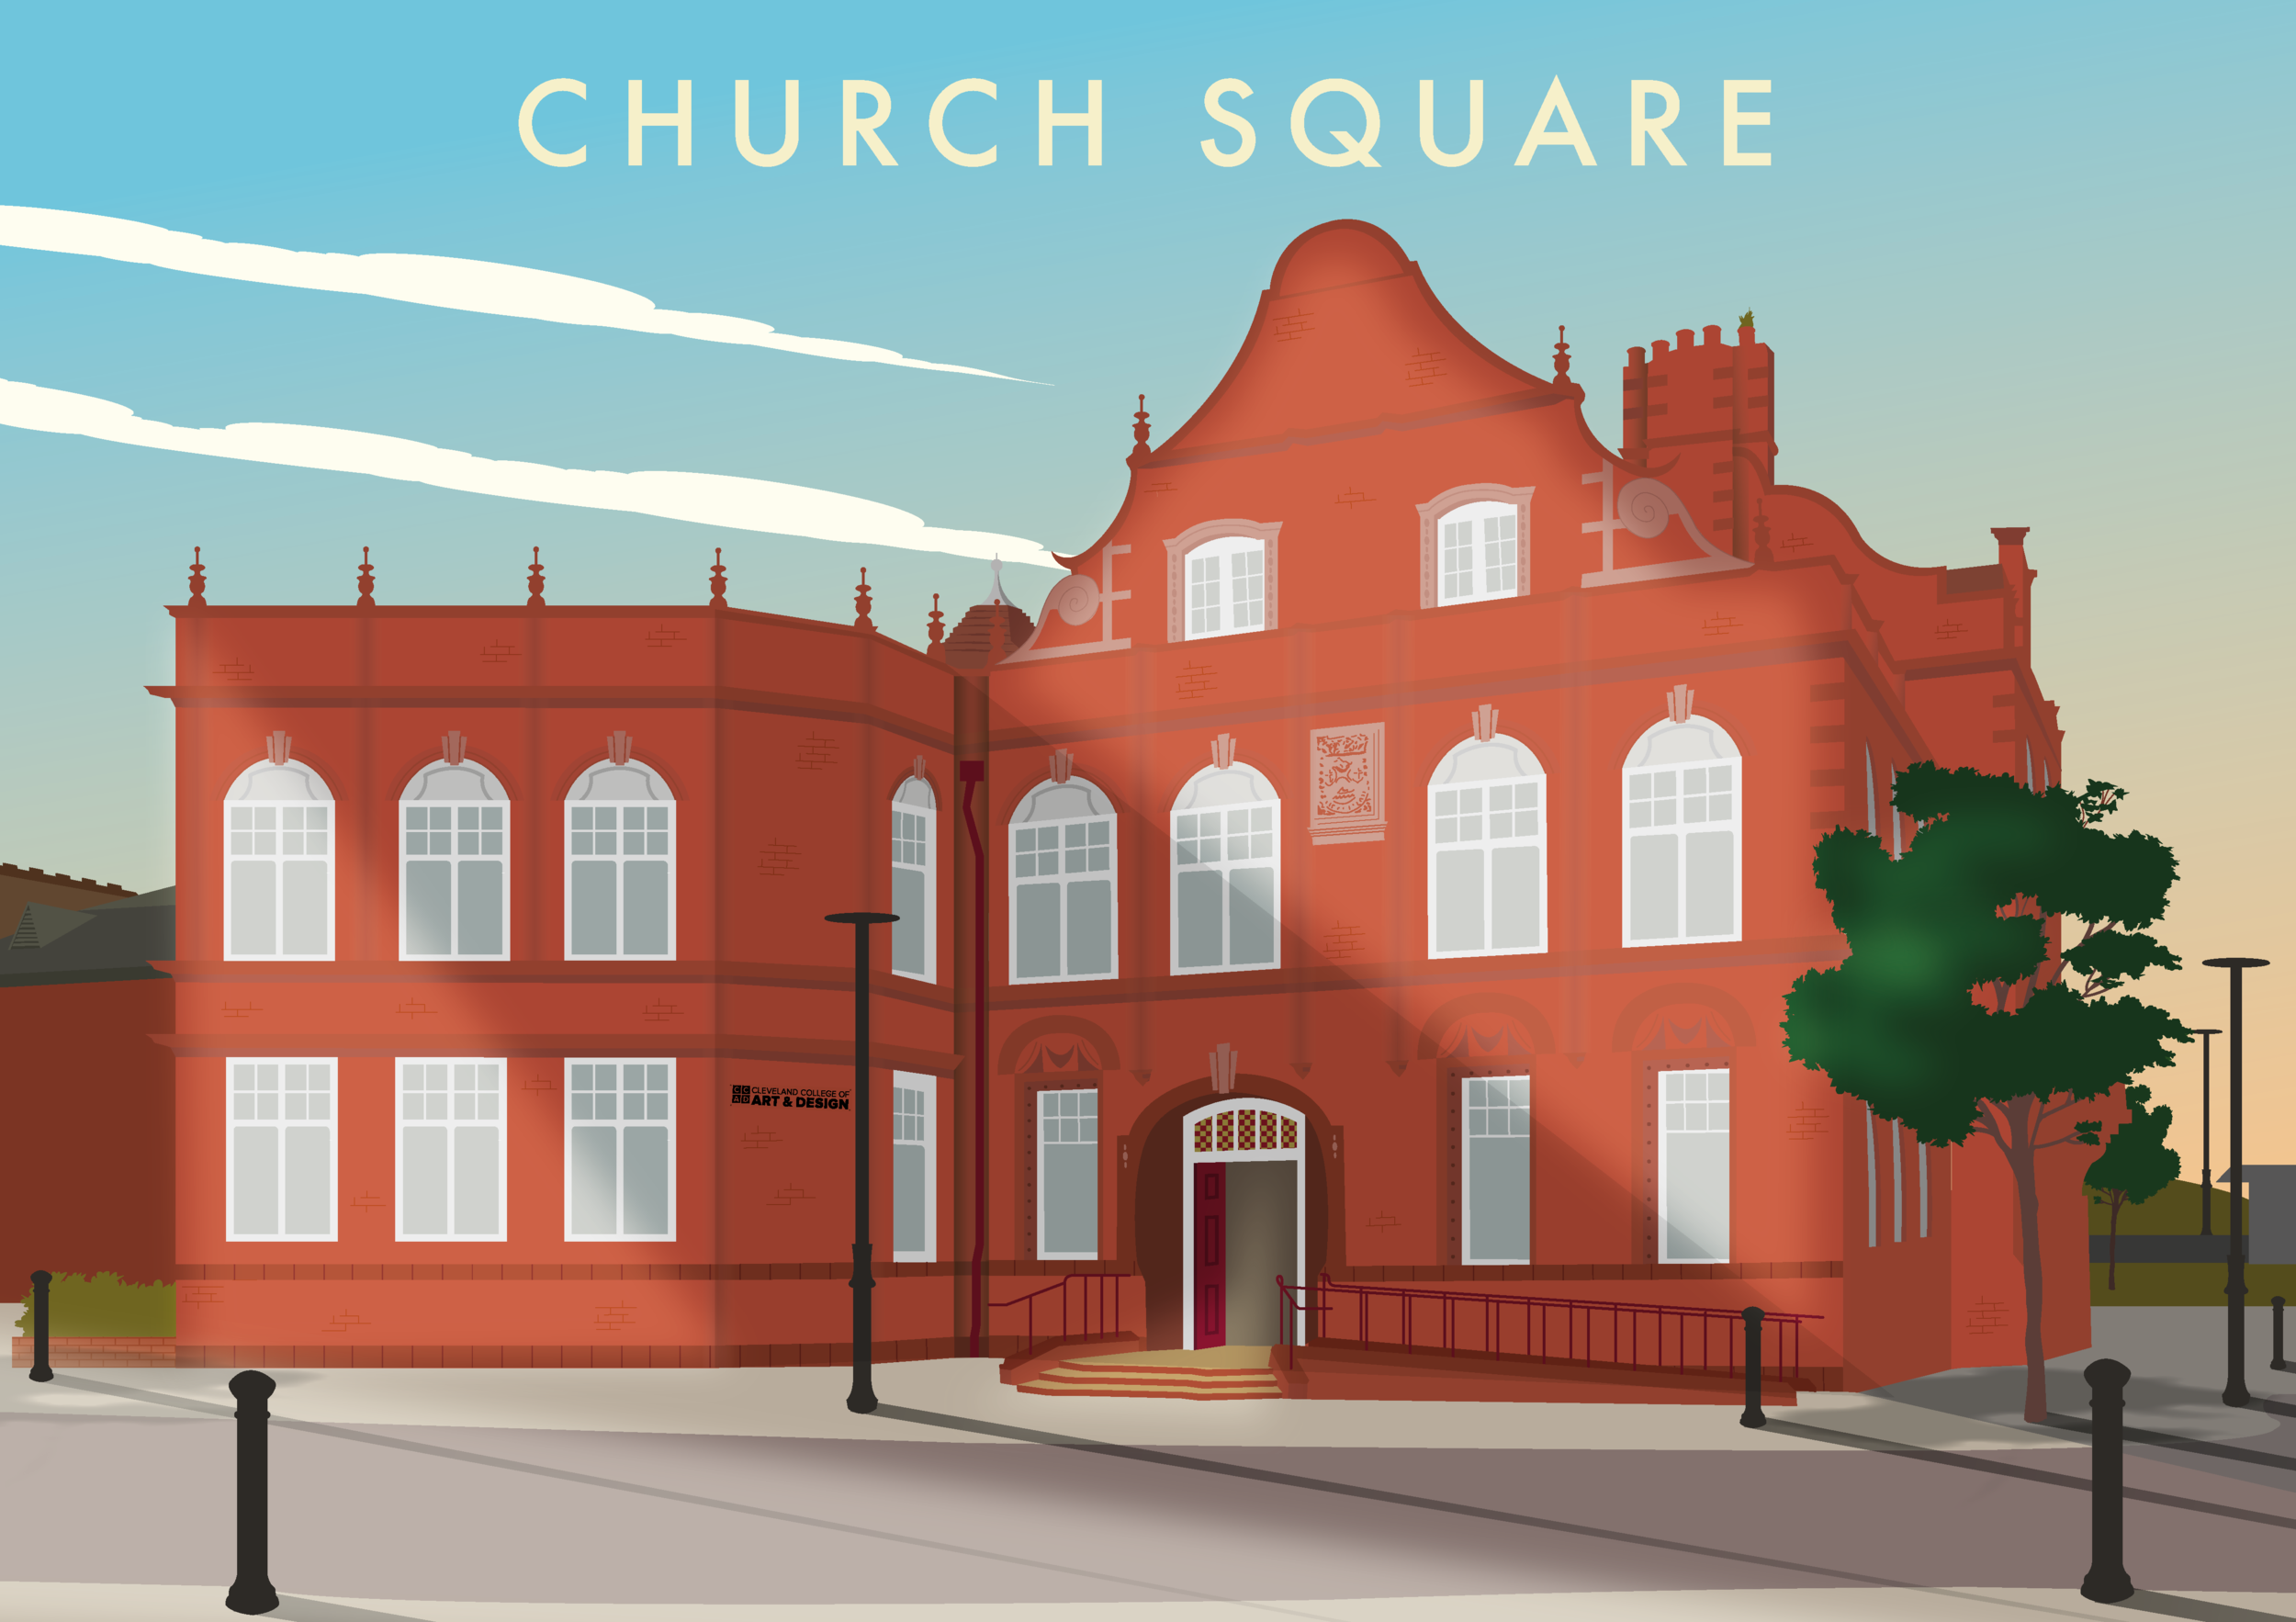 The Northern School of Art - Church Square (Hartlepool) Illustration